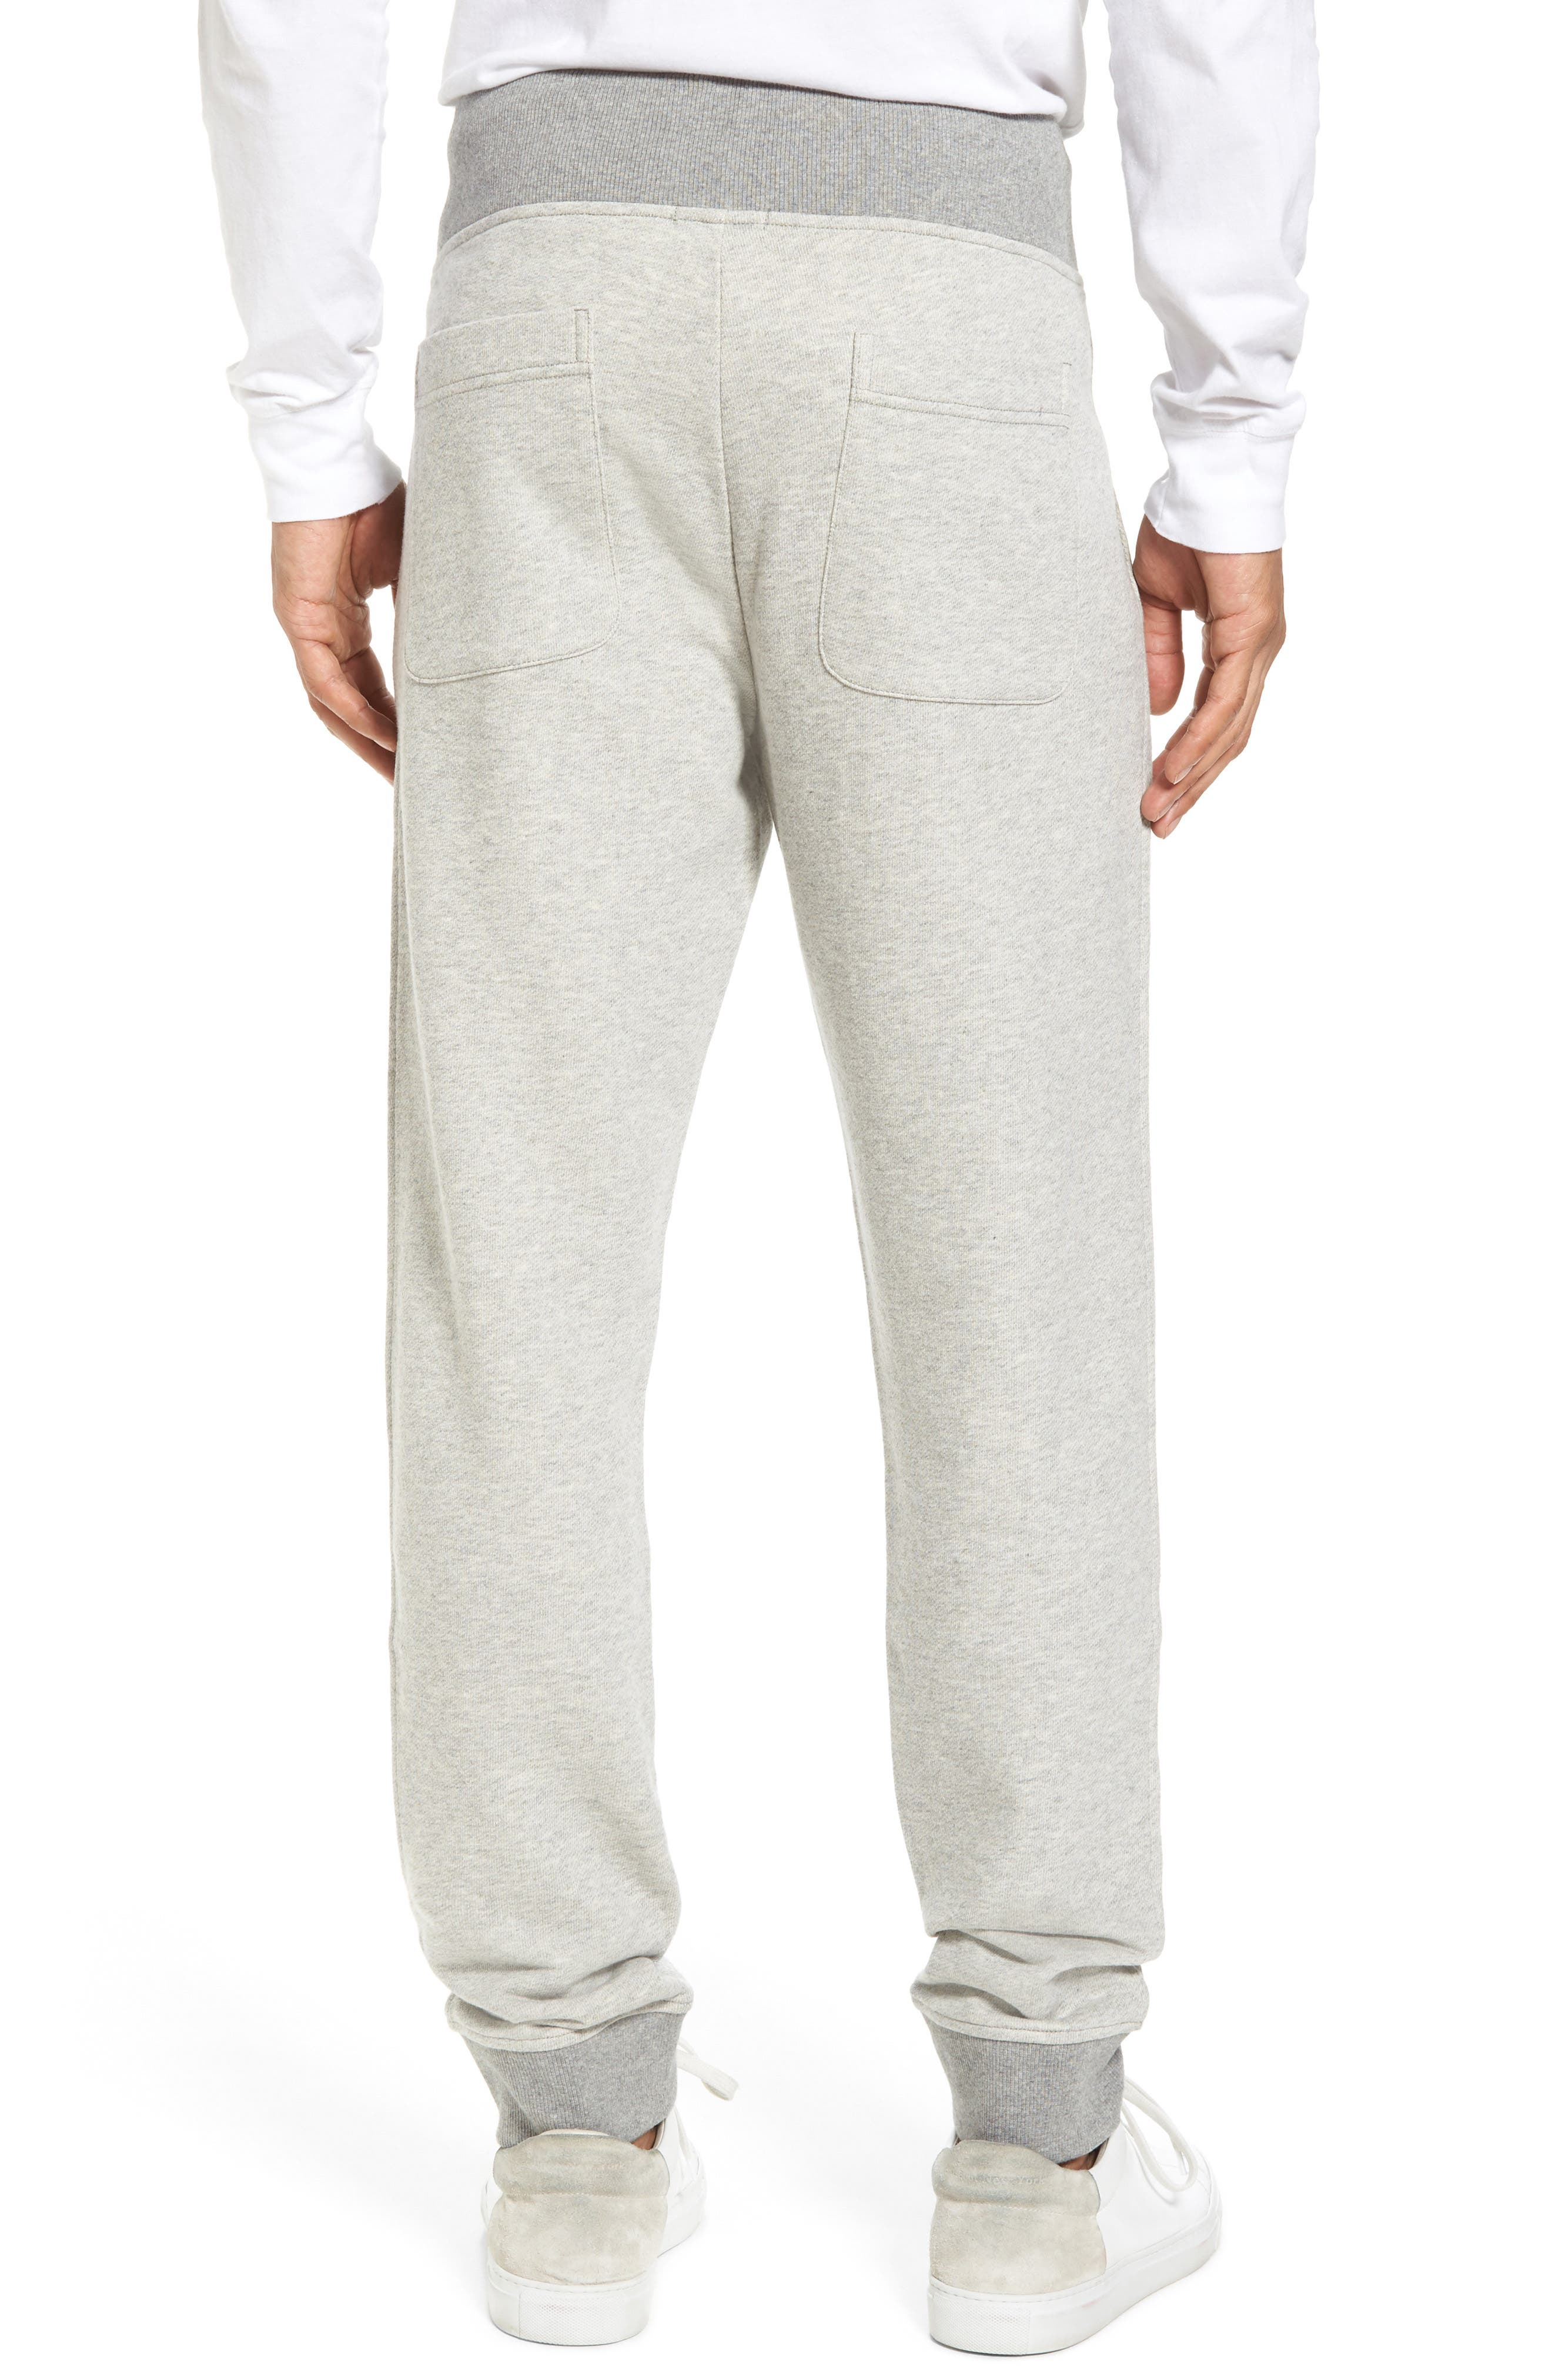 French Terry Regular Fit Sweatpants,                             Alternate thumbnail 4, color,